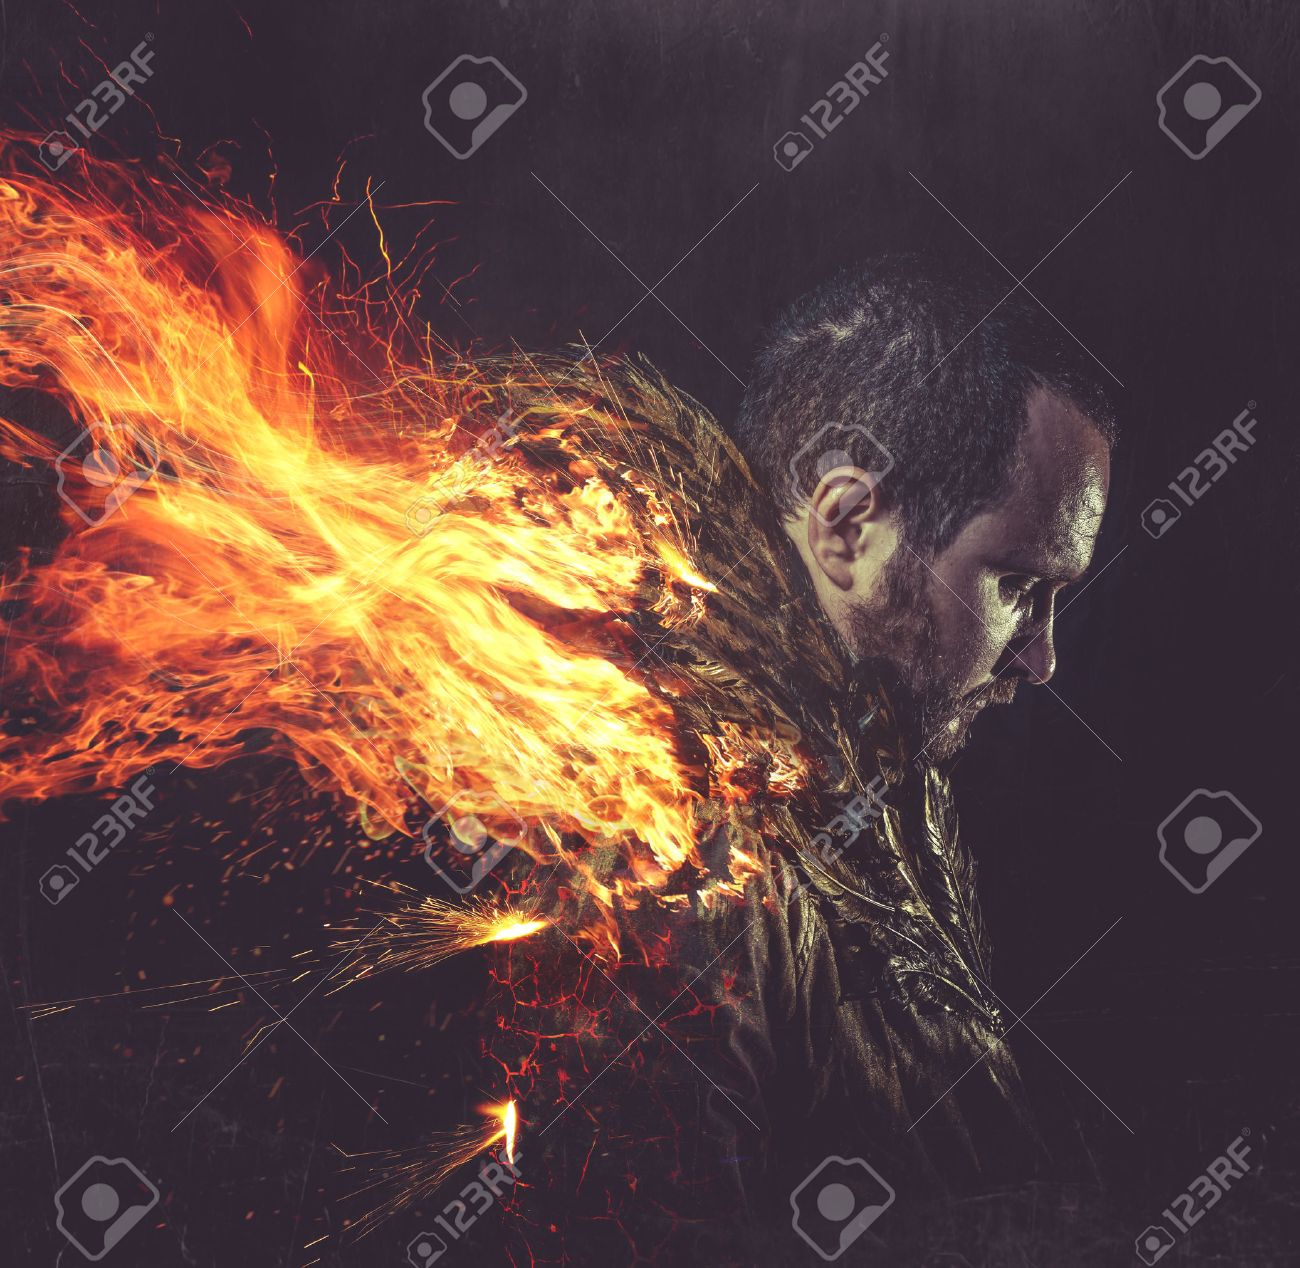 fallen angel, jacket man with golden feathers on the wings and fire - 30572999